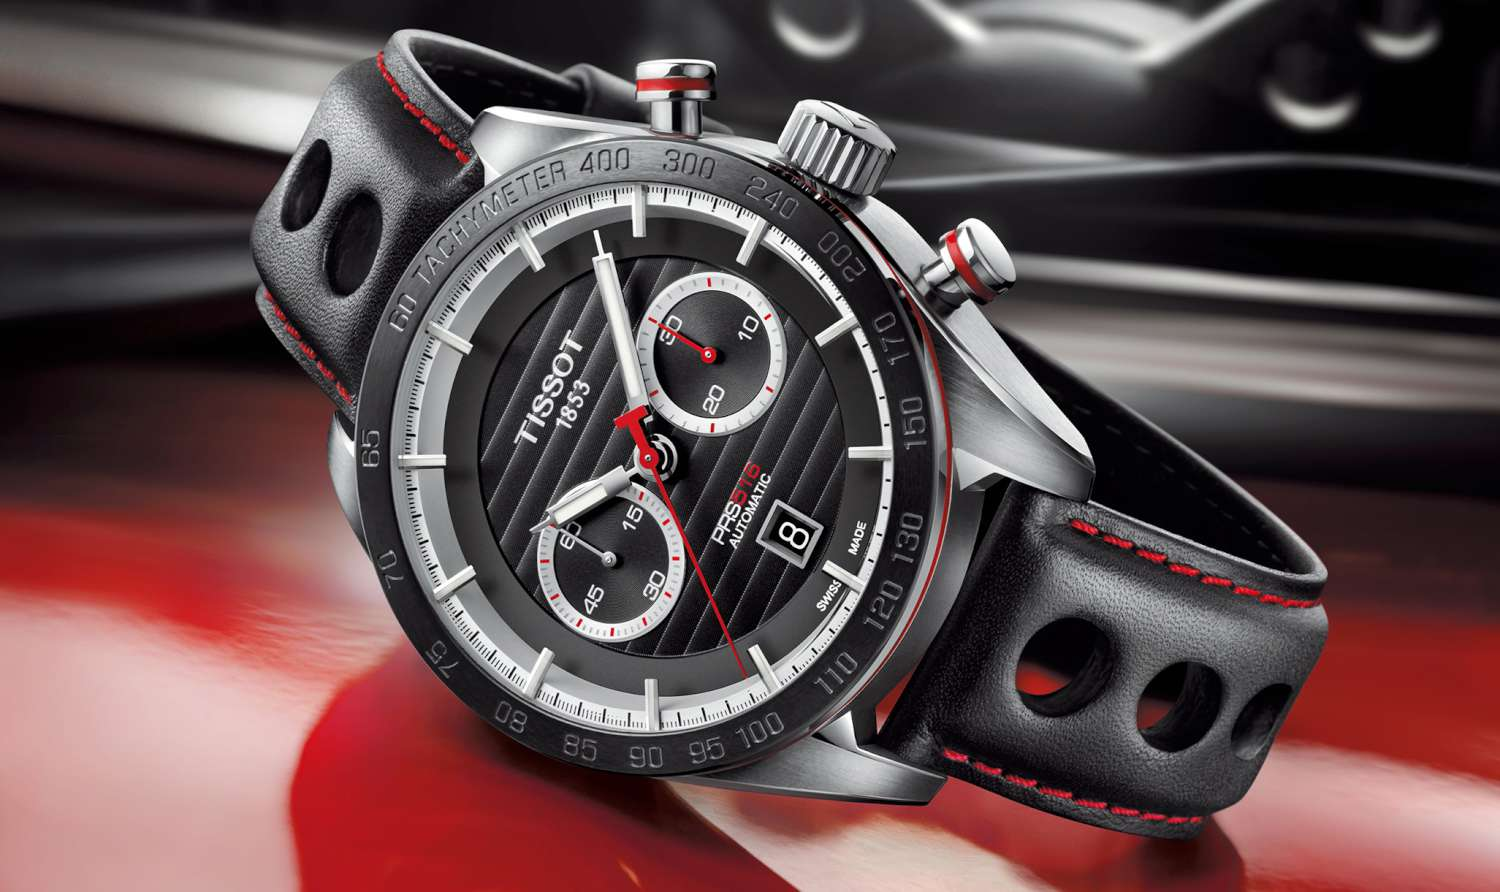 mens citizen watch casio photo quote watches the mazzuoli racing auto giuliano trasmissione meccanica